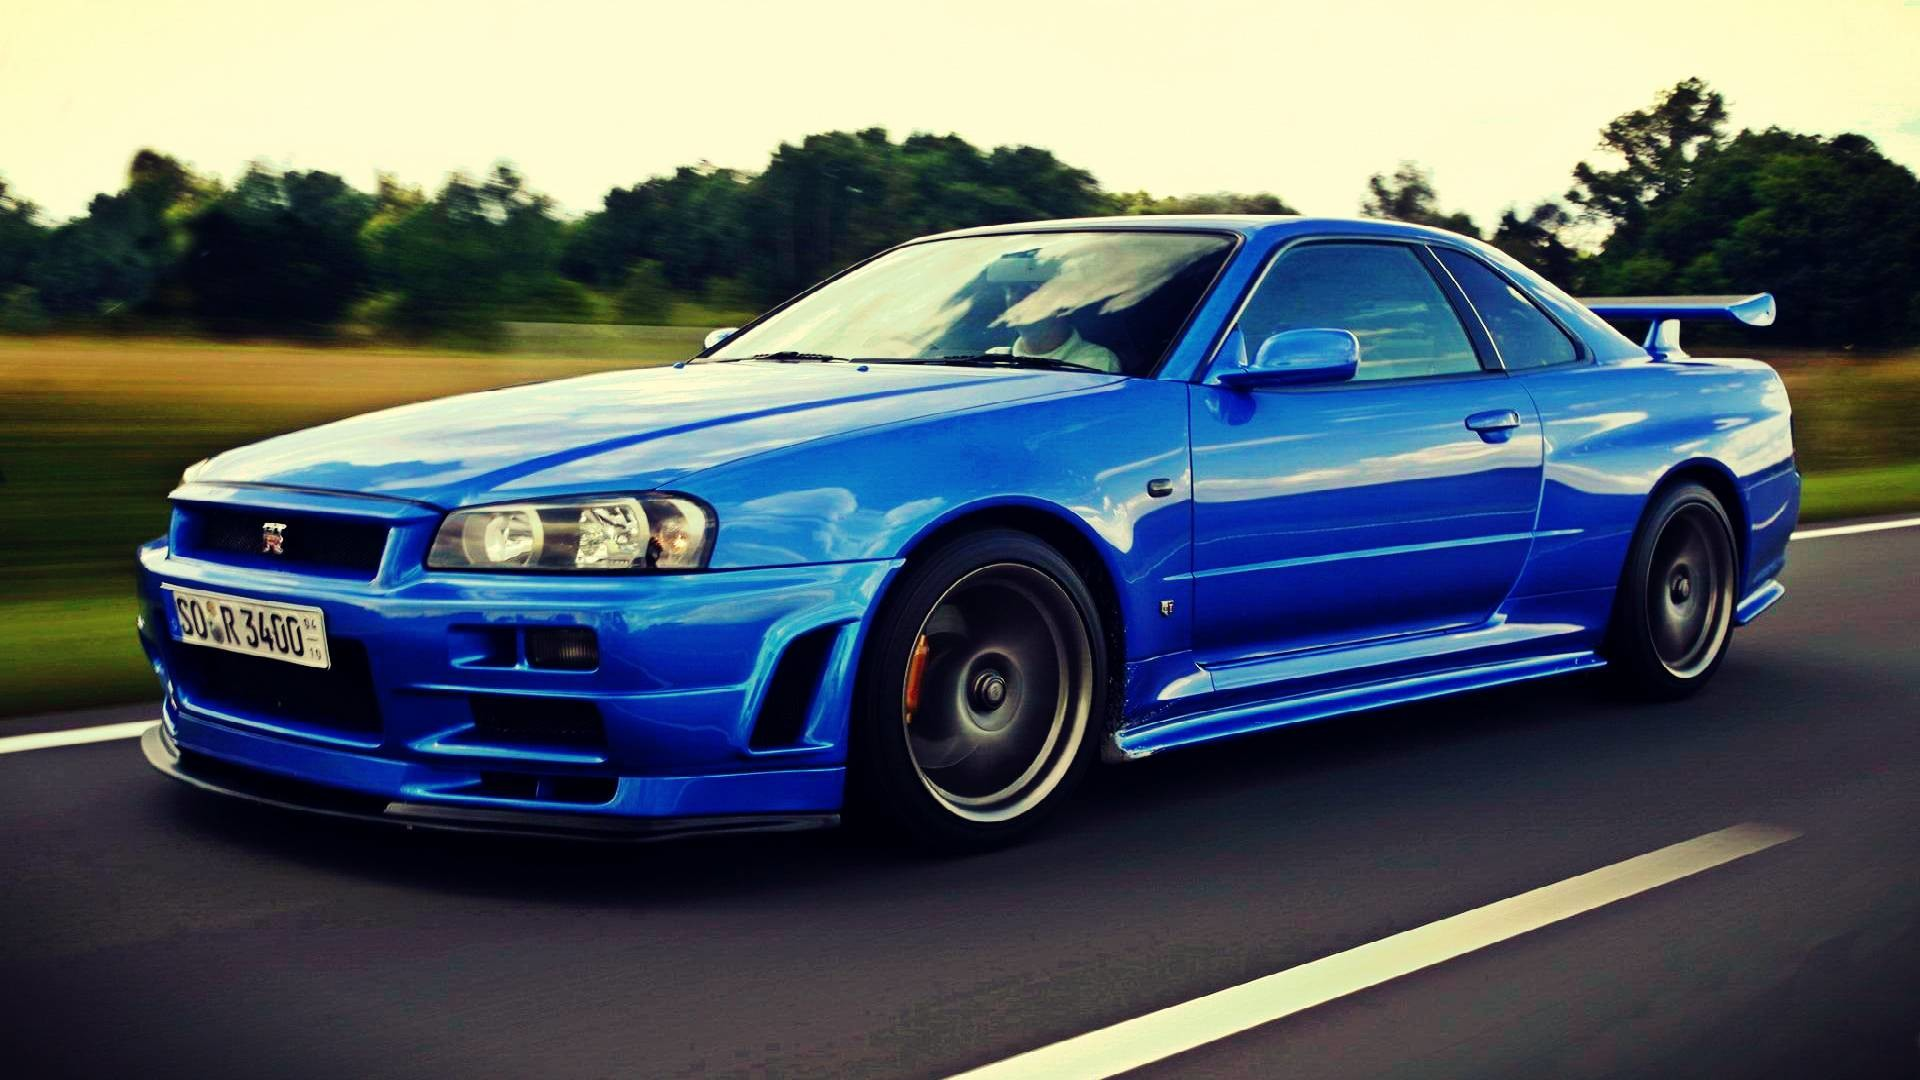 nissan skyline gt r r34 wallpapers 70 images. Black Bedroom Furniture Sets. Home Design Ideas